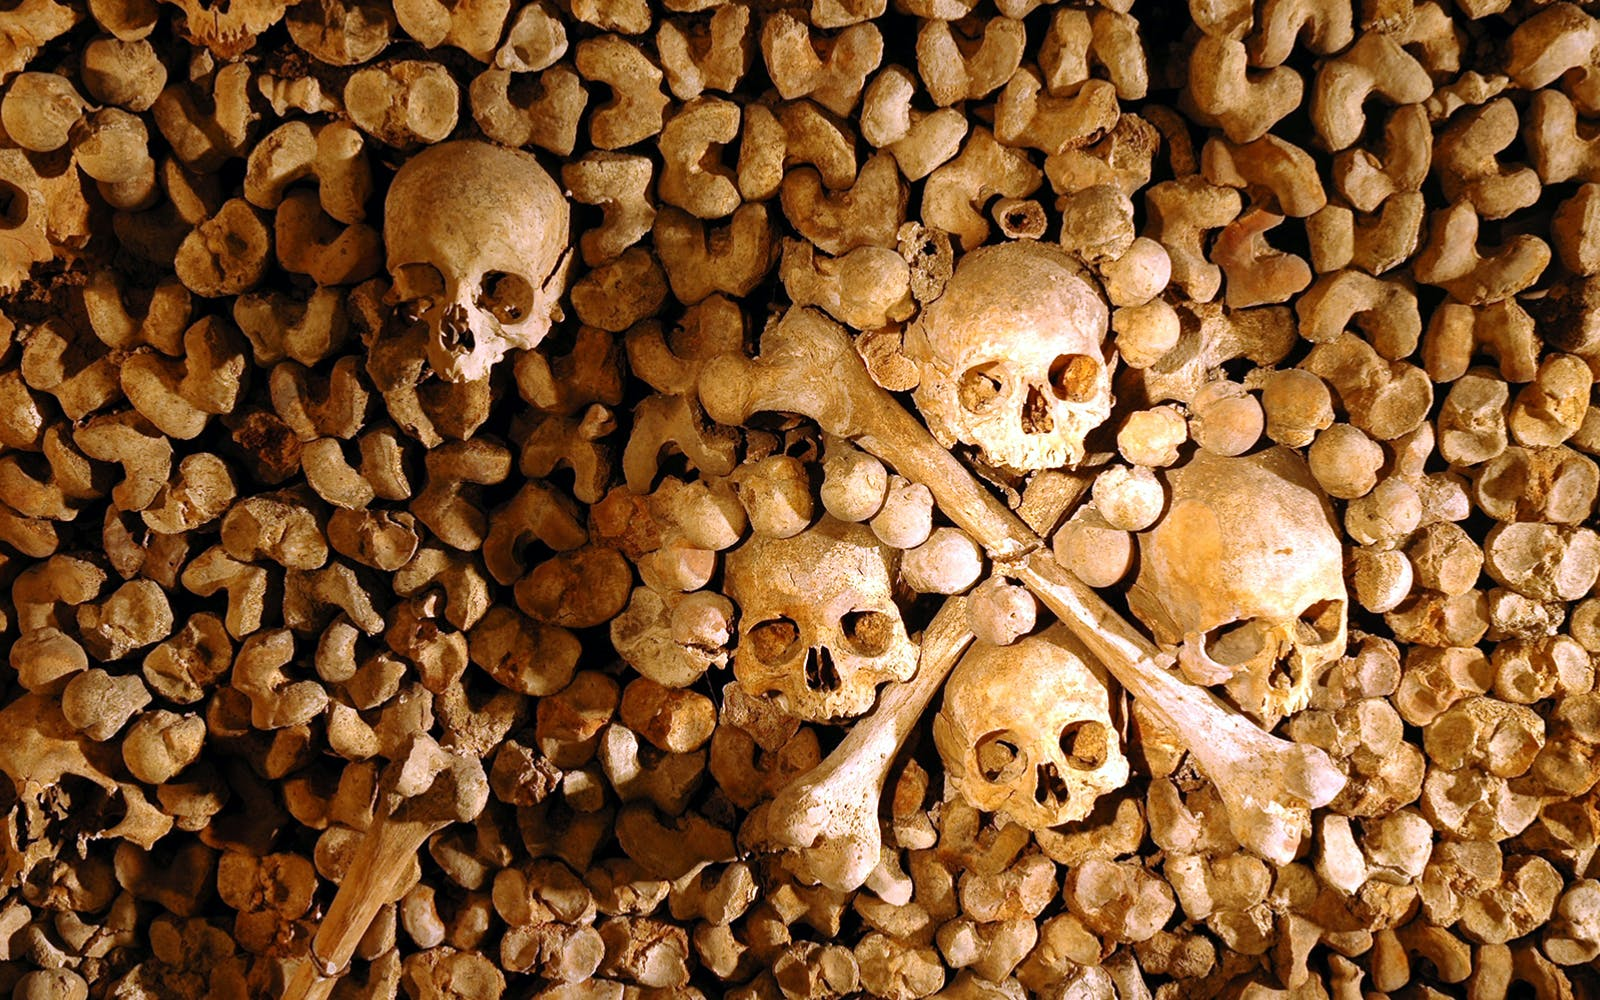 Paris Skip The Line Tickets - Catacombs